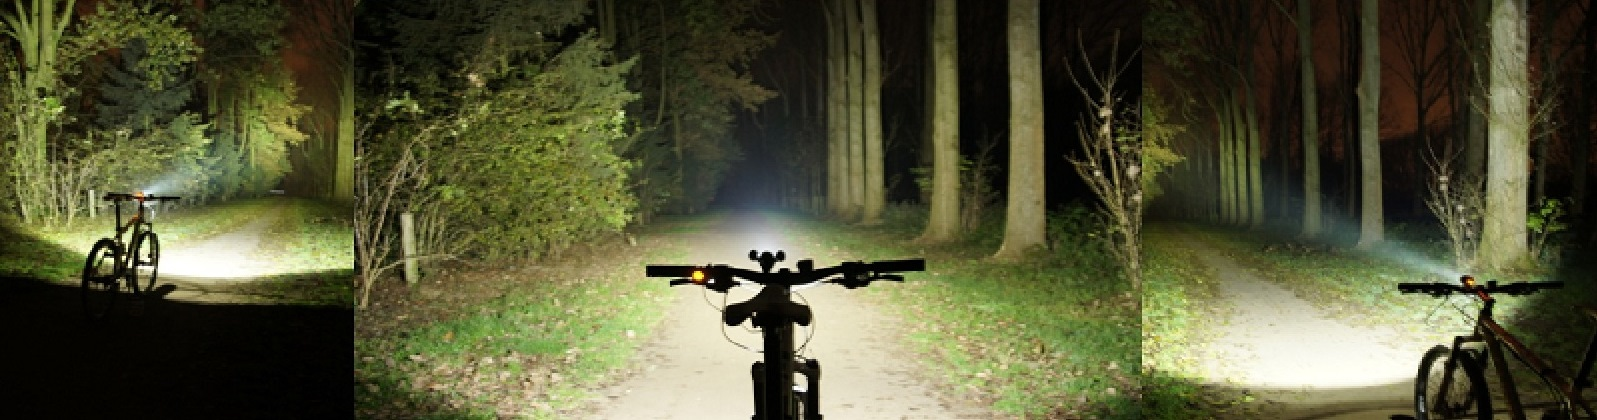 Awesome Mtb Verlichting Test Pictures - Ideeën Voor Thuis ...